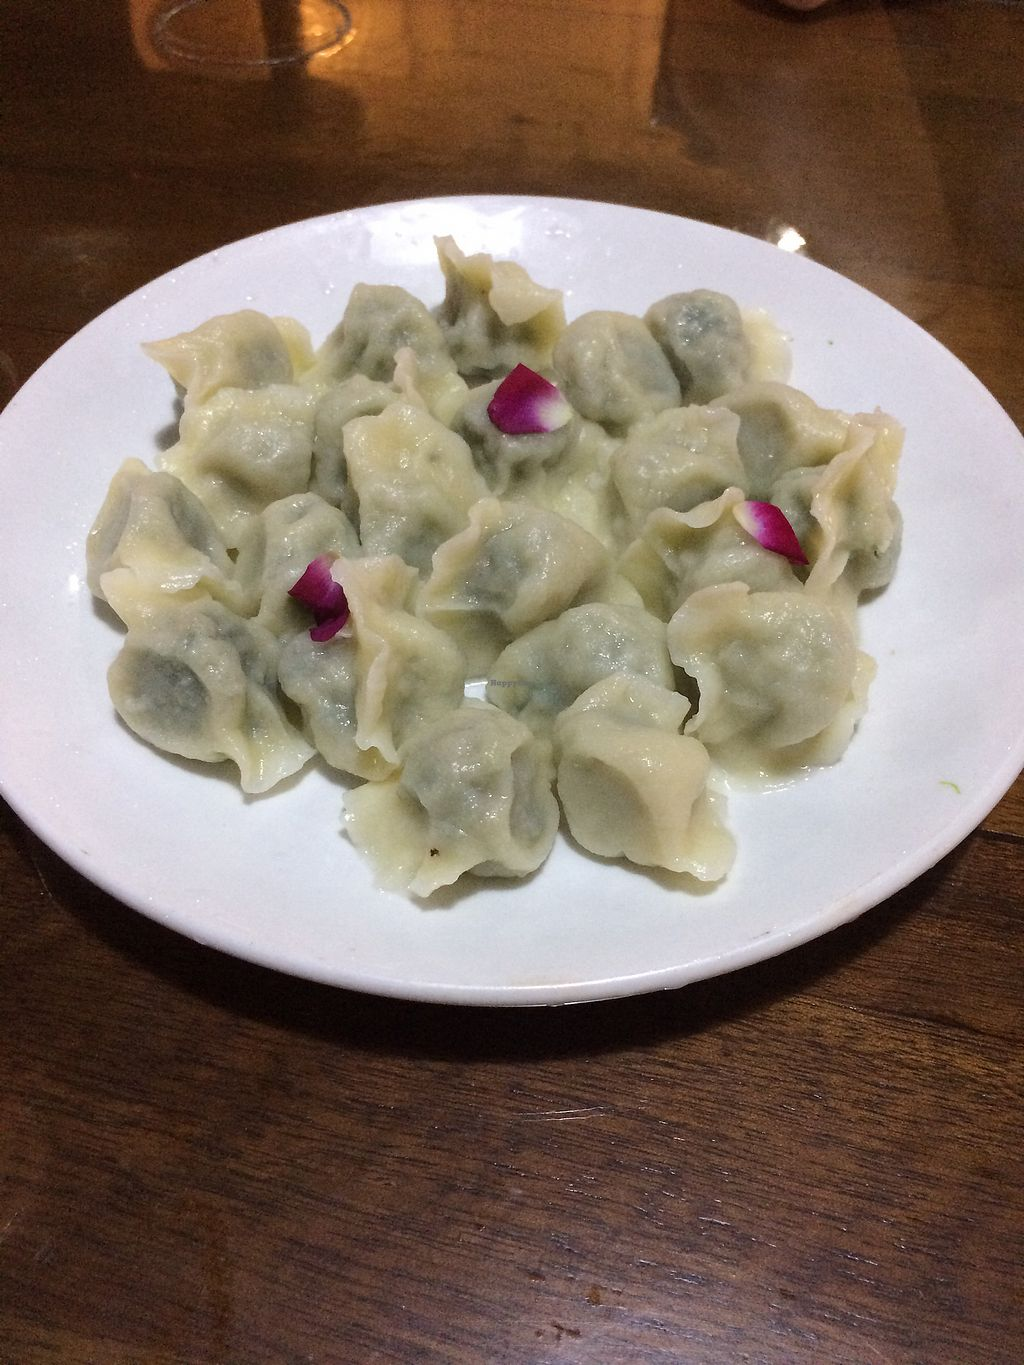 "Photo of Fu Hui Ci Yuan Vegetarian Cultural Restaurant  by <a href=""/members/profile/Italian.vegan"">Italian.vegan</a> <br/>Dumplings <br/> October 10, 2017  - <a href='/contact/abuse/image/28431/313939'>Report</a>"